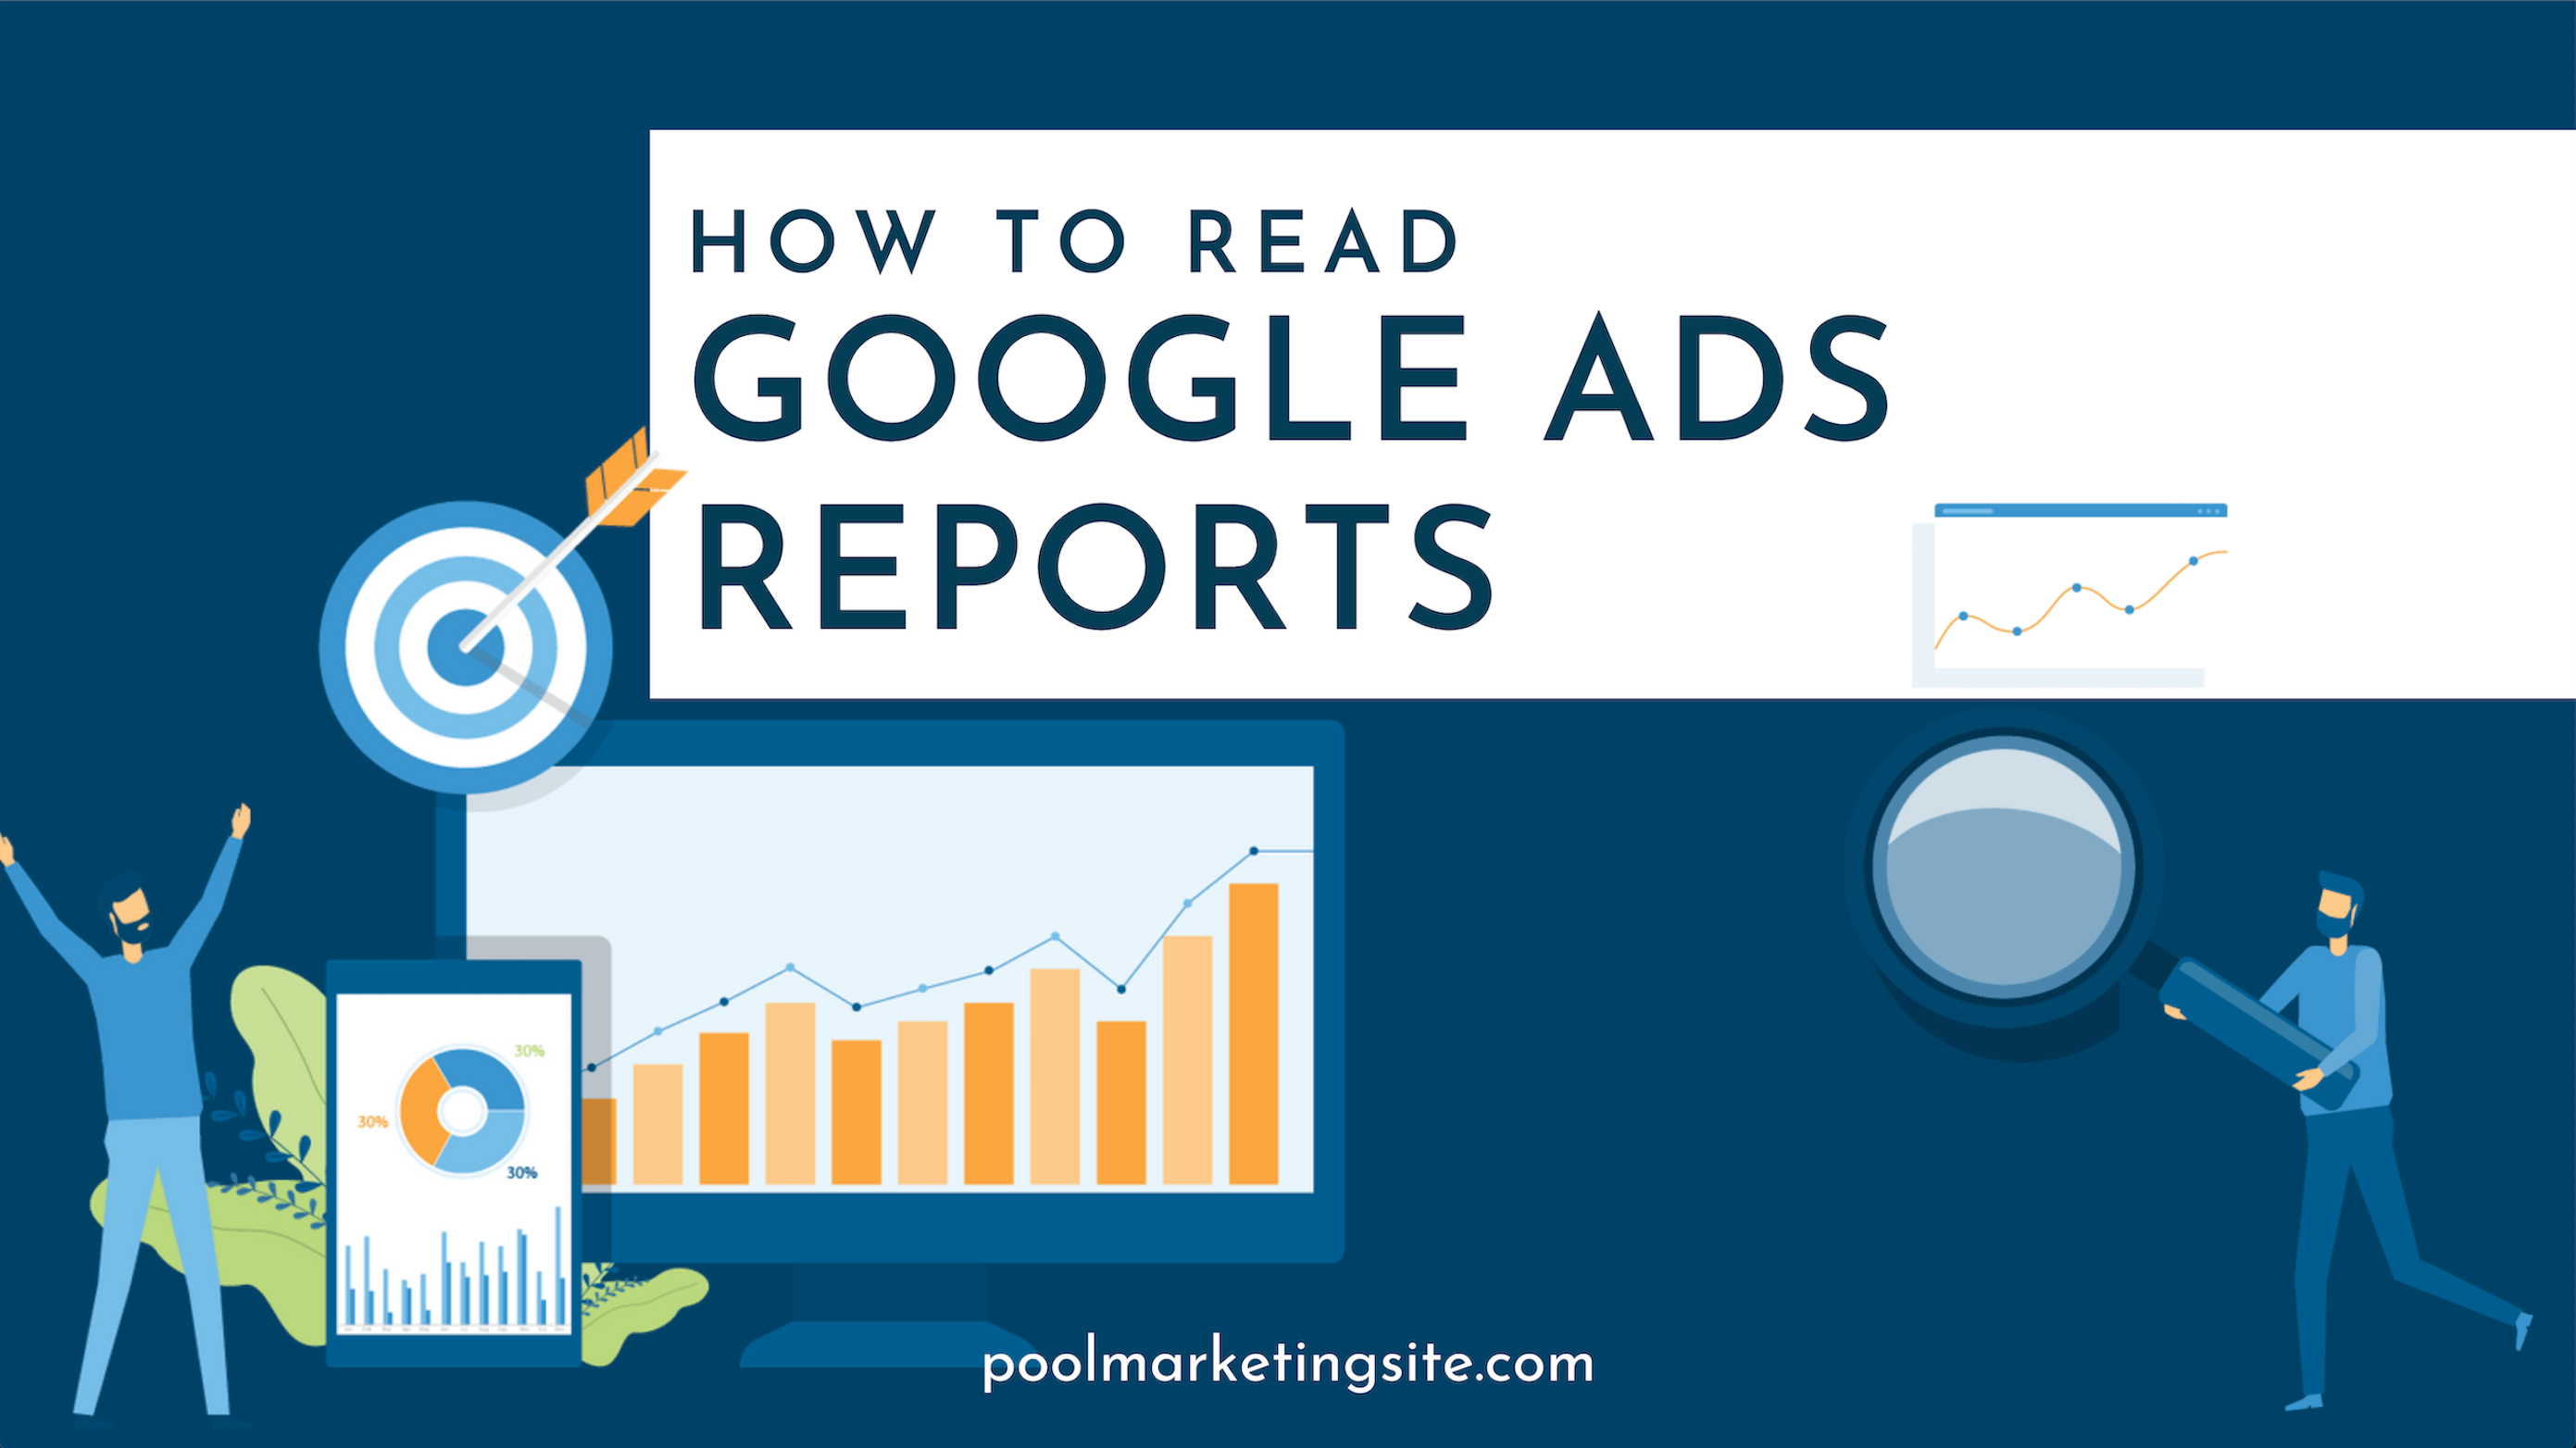 How to Read Google Ads Reports